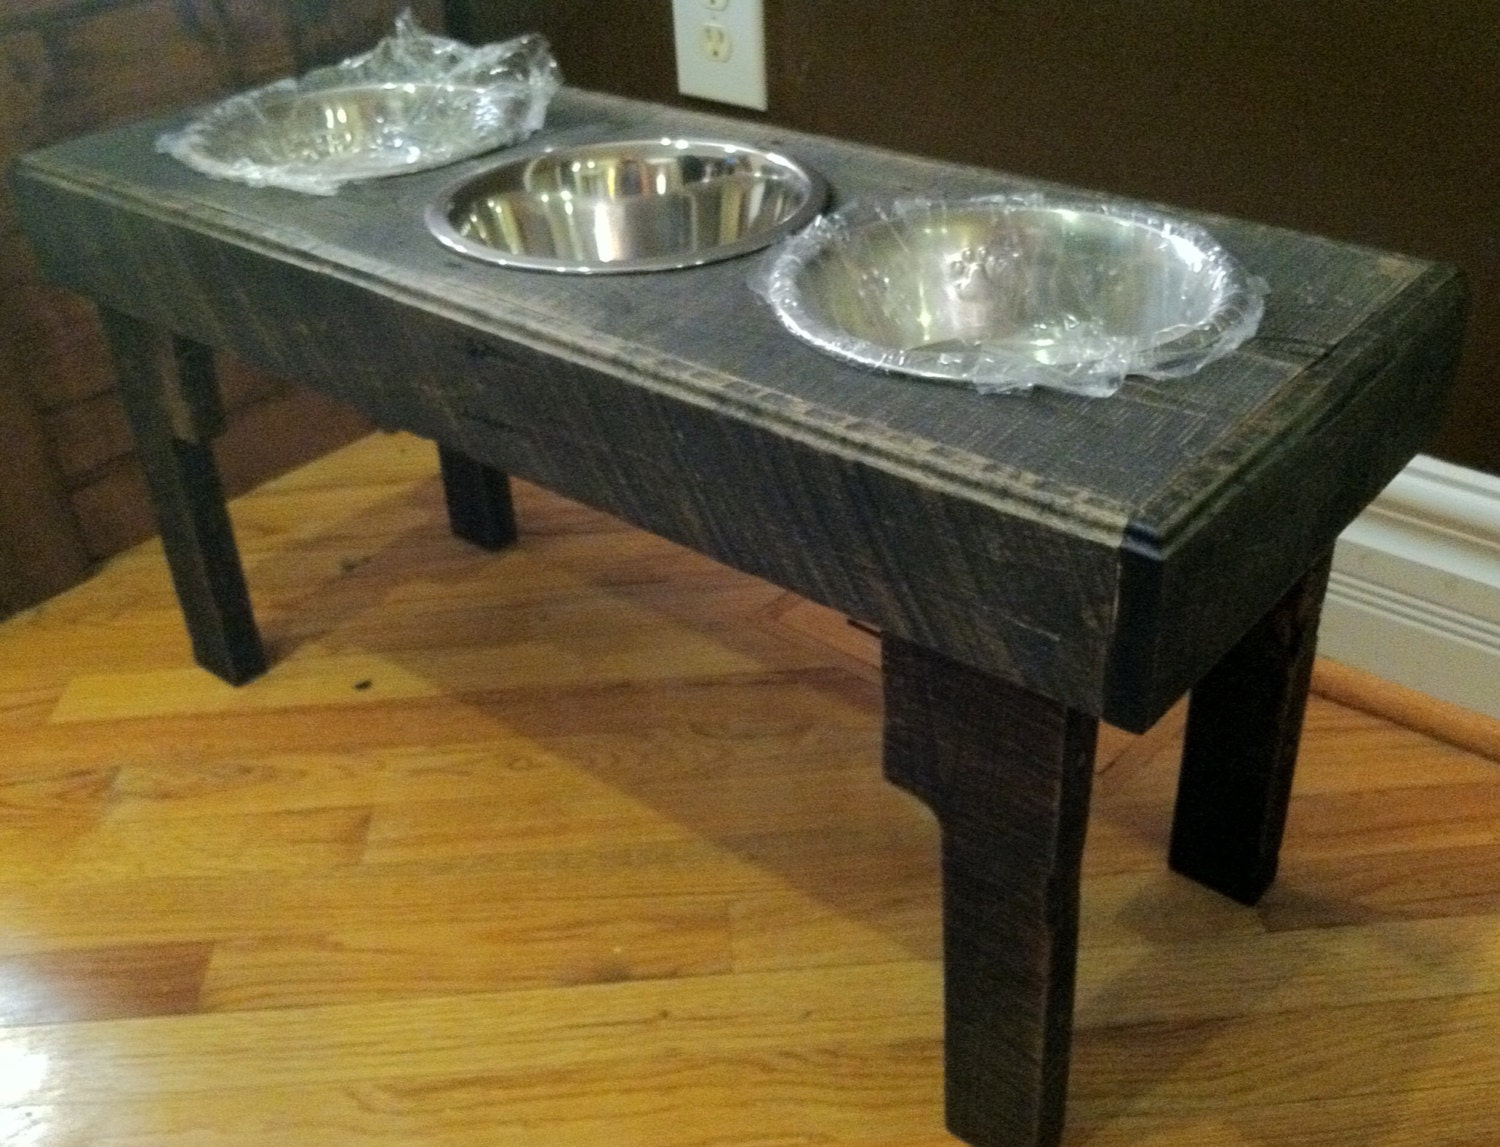 Rustic dog bowl stand made from recycled pallets 15 tall - photo#24